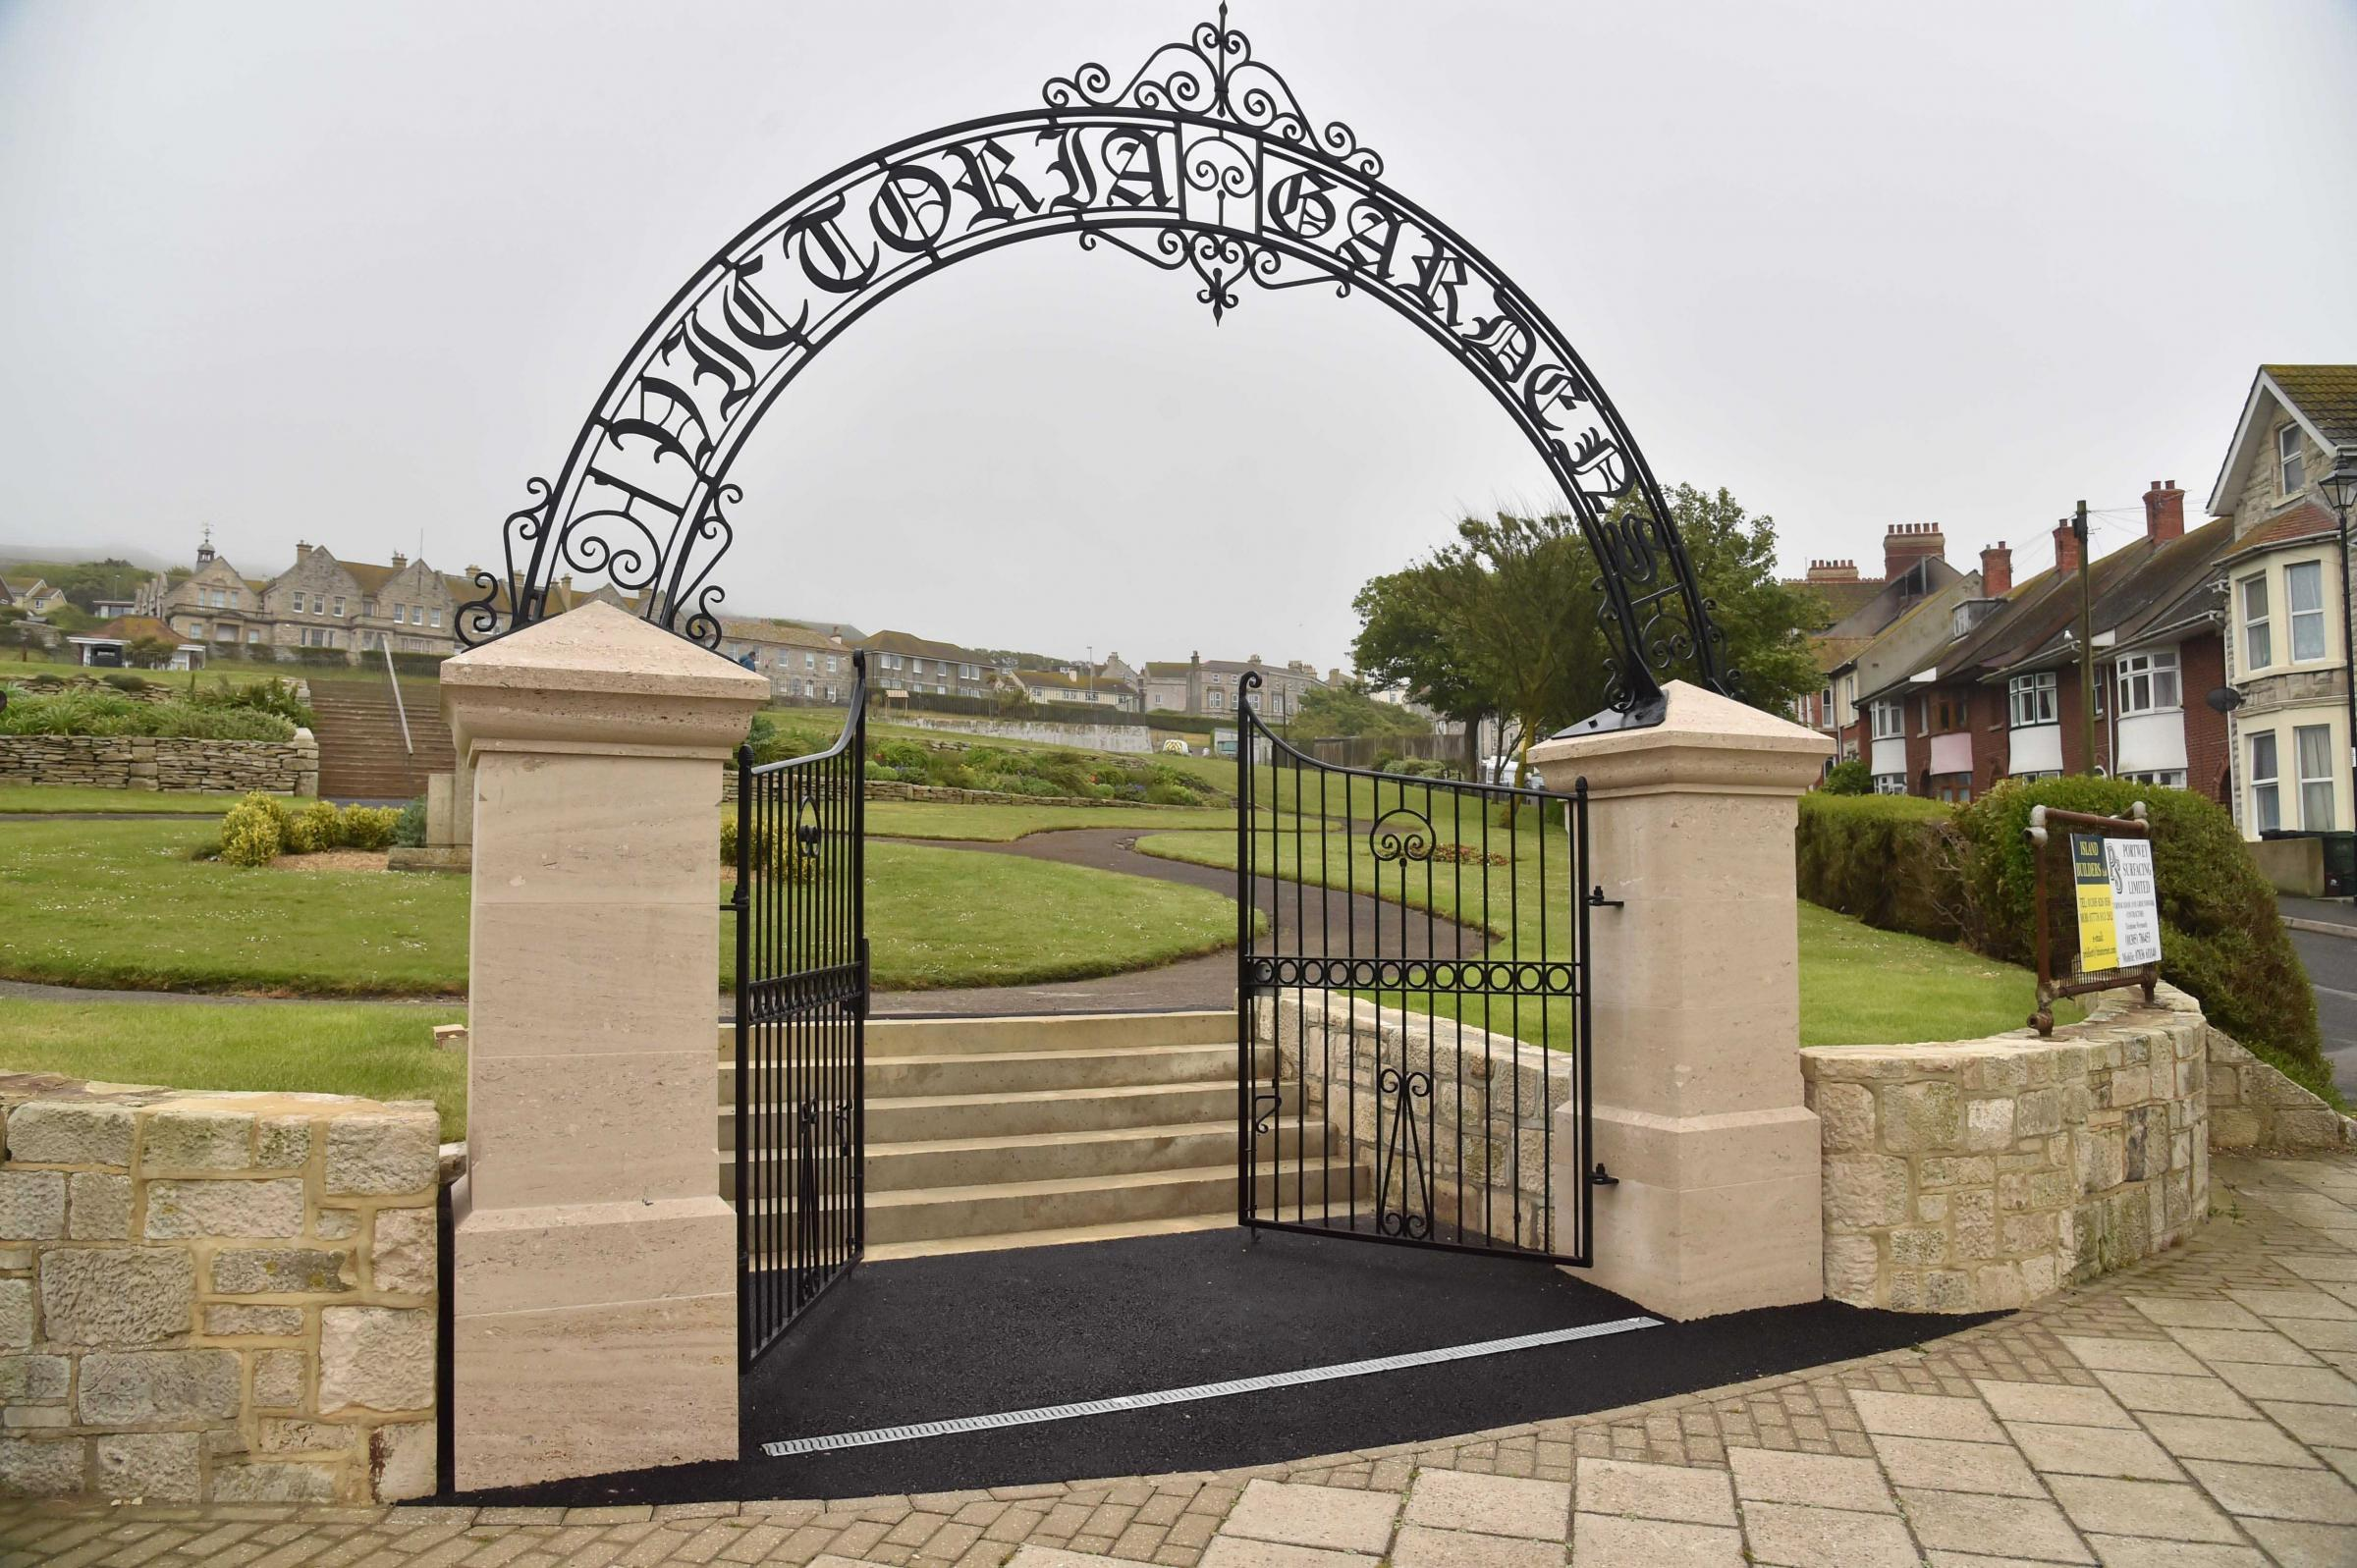 New gateway for Portlands Victoria Gardens based on 1904 original